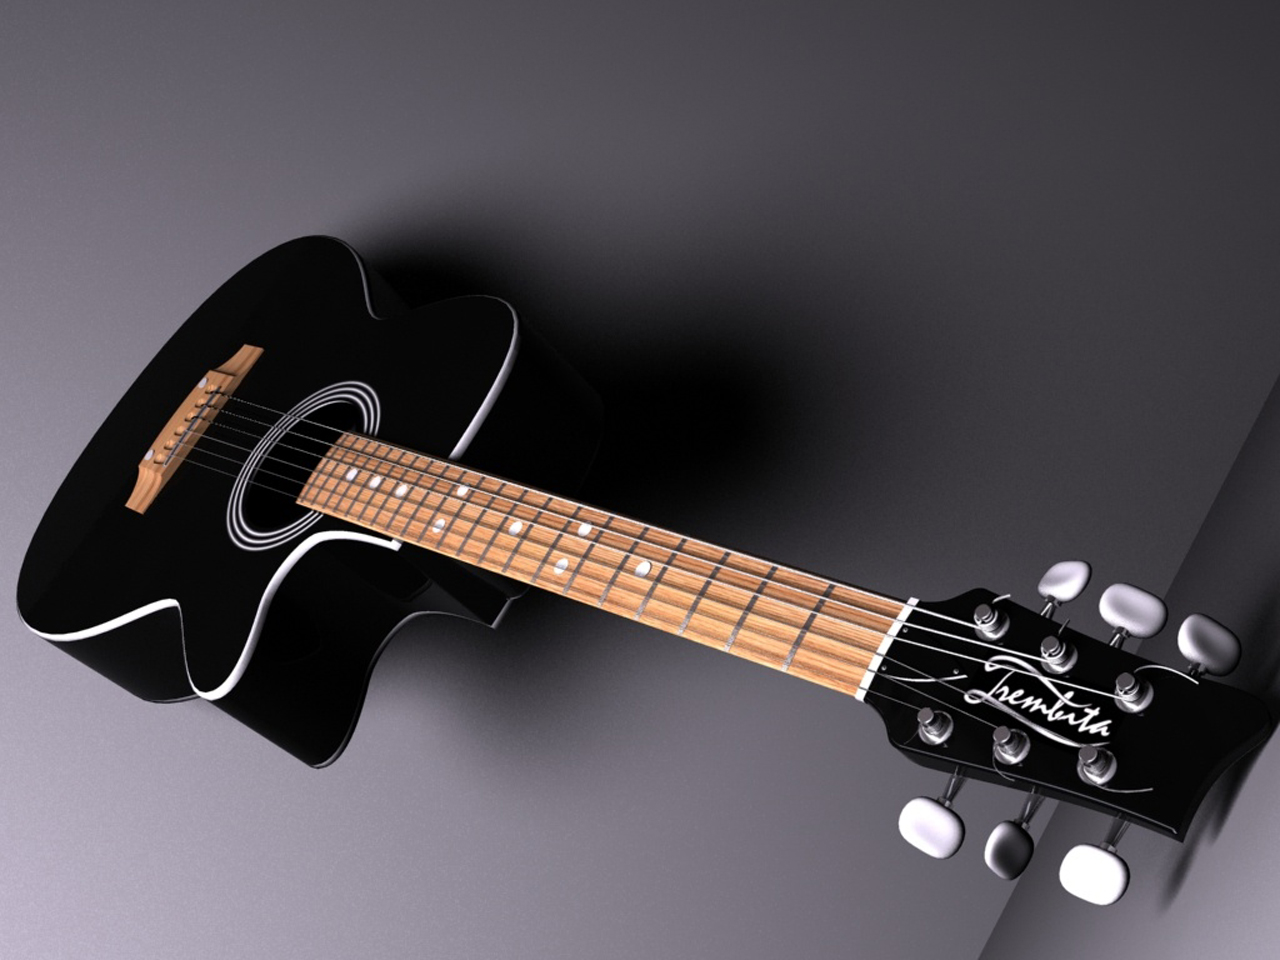 Awesome Bass Guitar Wallpaper